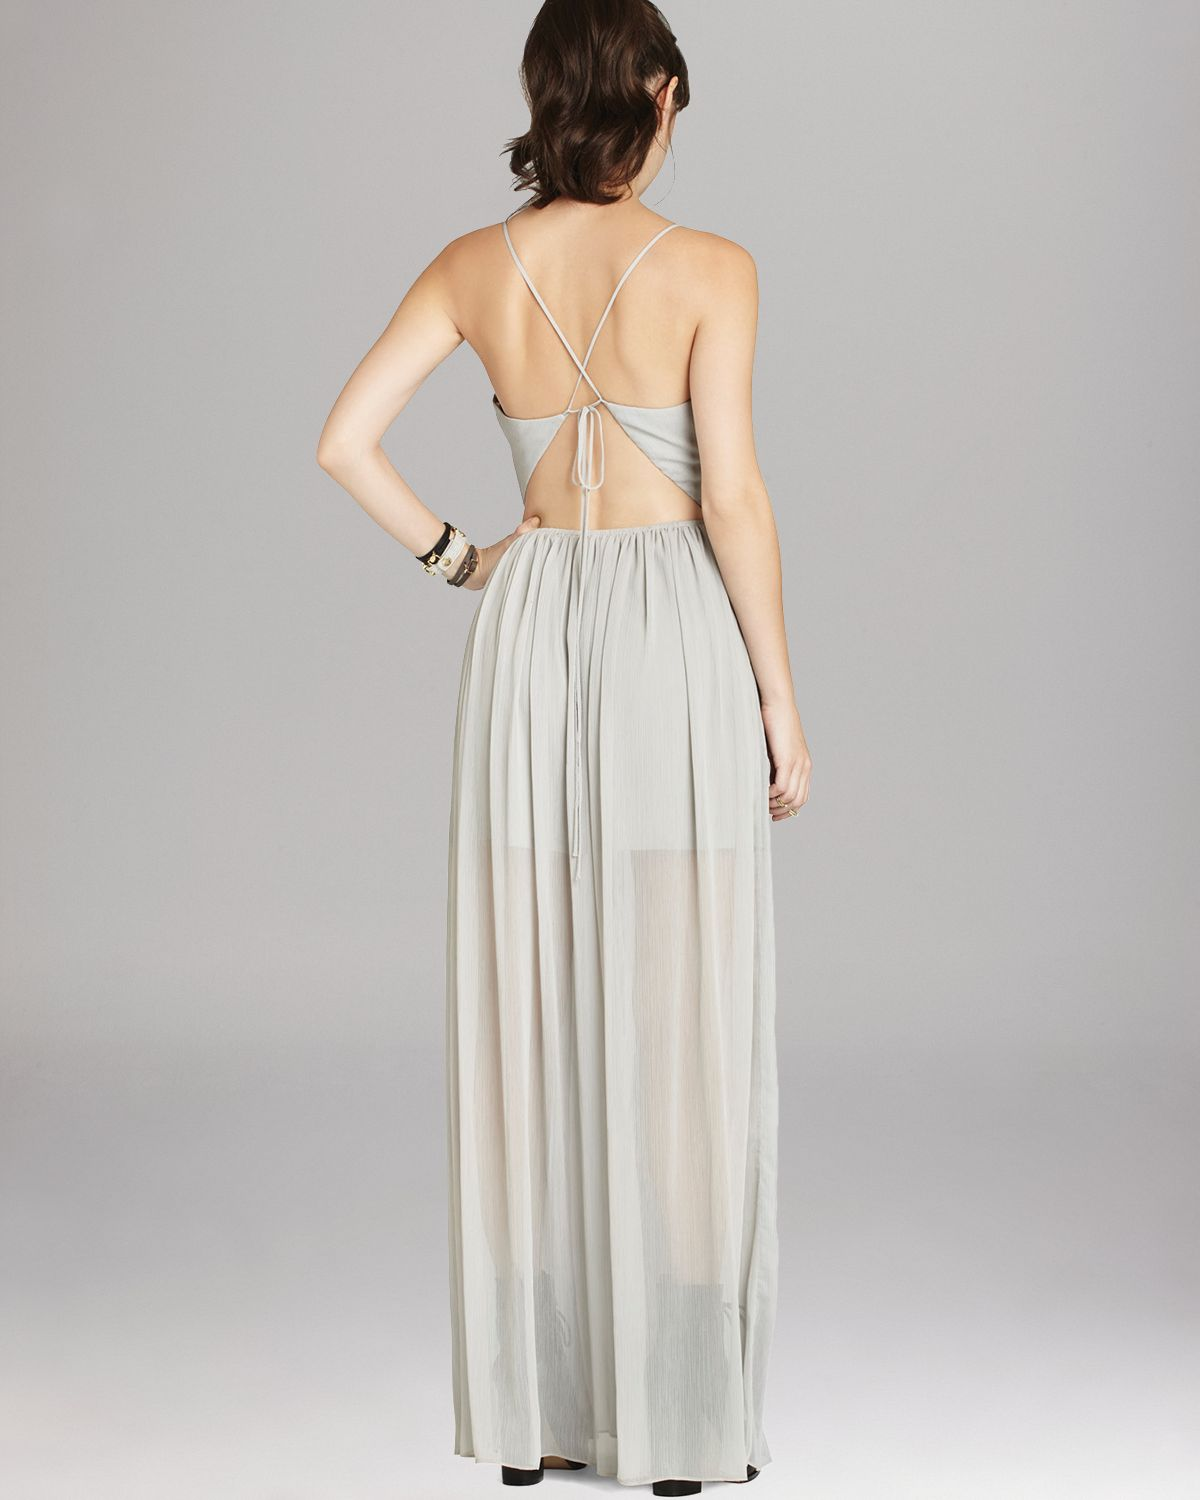 Bcbgeneration gray maxi dress